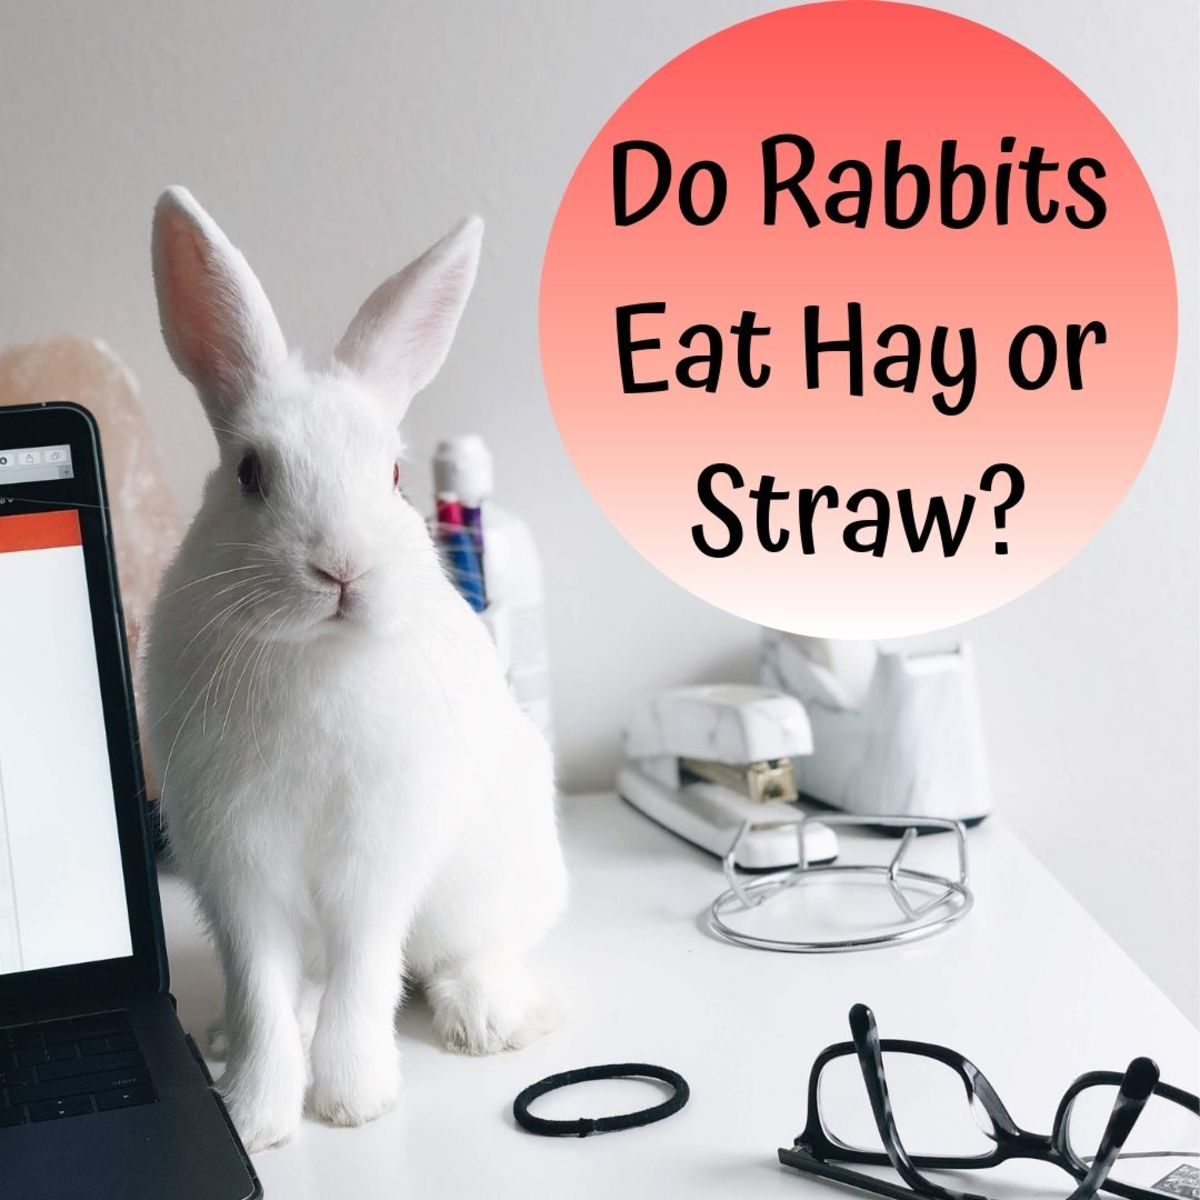 Learn all about the differences between hay and straw, and why you should only feed your rabbit hay.